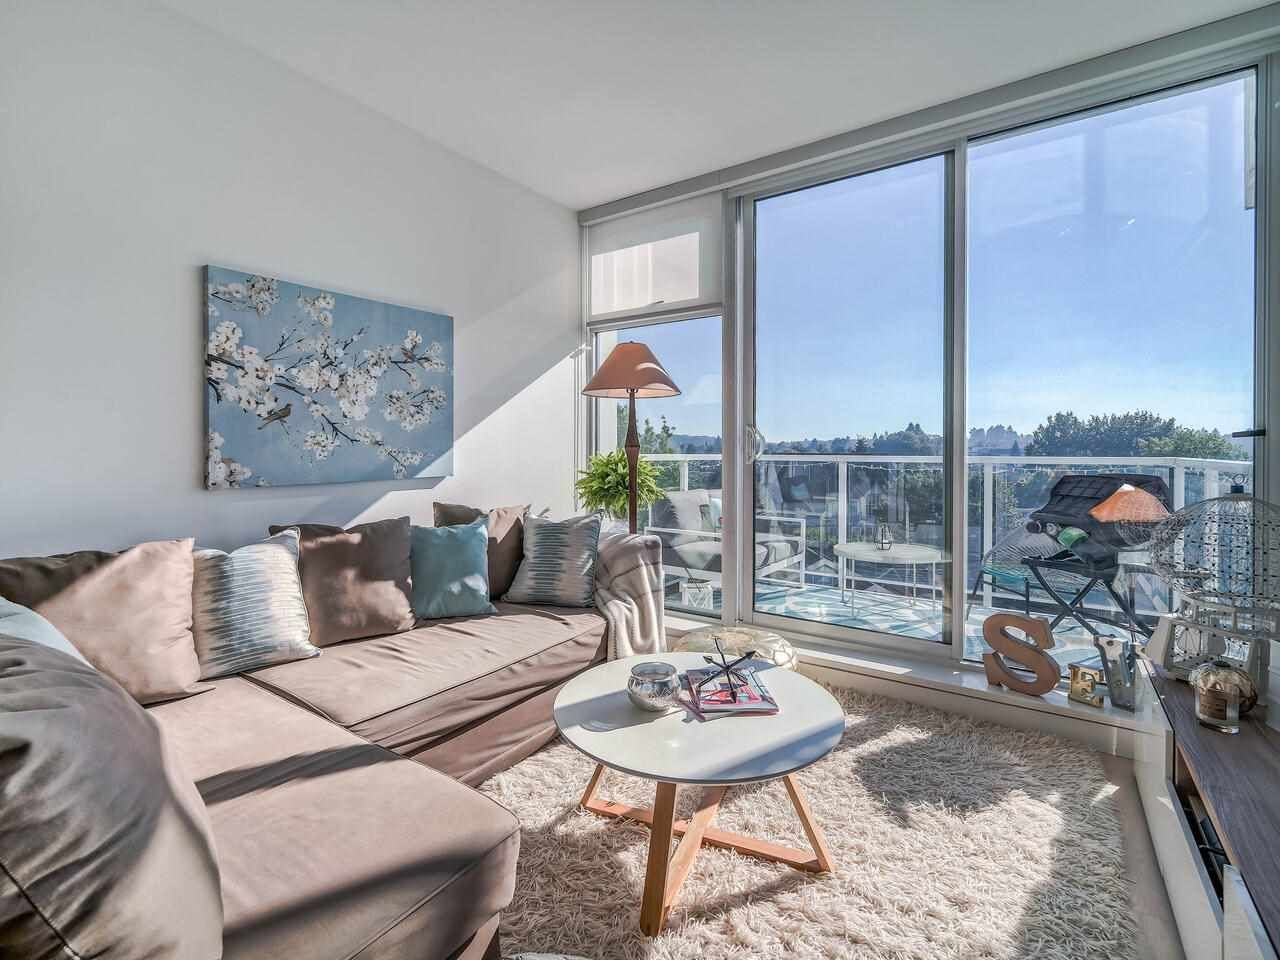 """Main Photo: 706 2221 E 30TH Avenue in Vancouver: Victoria VE Condo for sale in """"KENSINGTON GARDENS BY WESTBANK"""" (Vancouver East)  : MLS®# R2511988"""